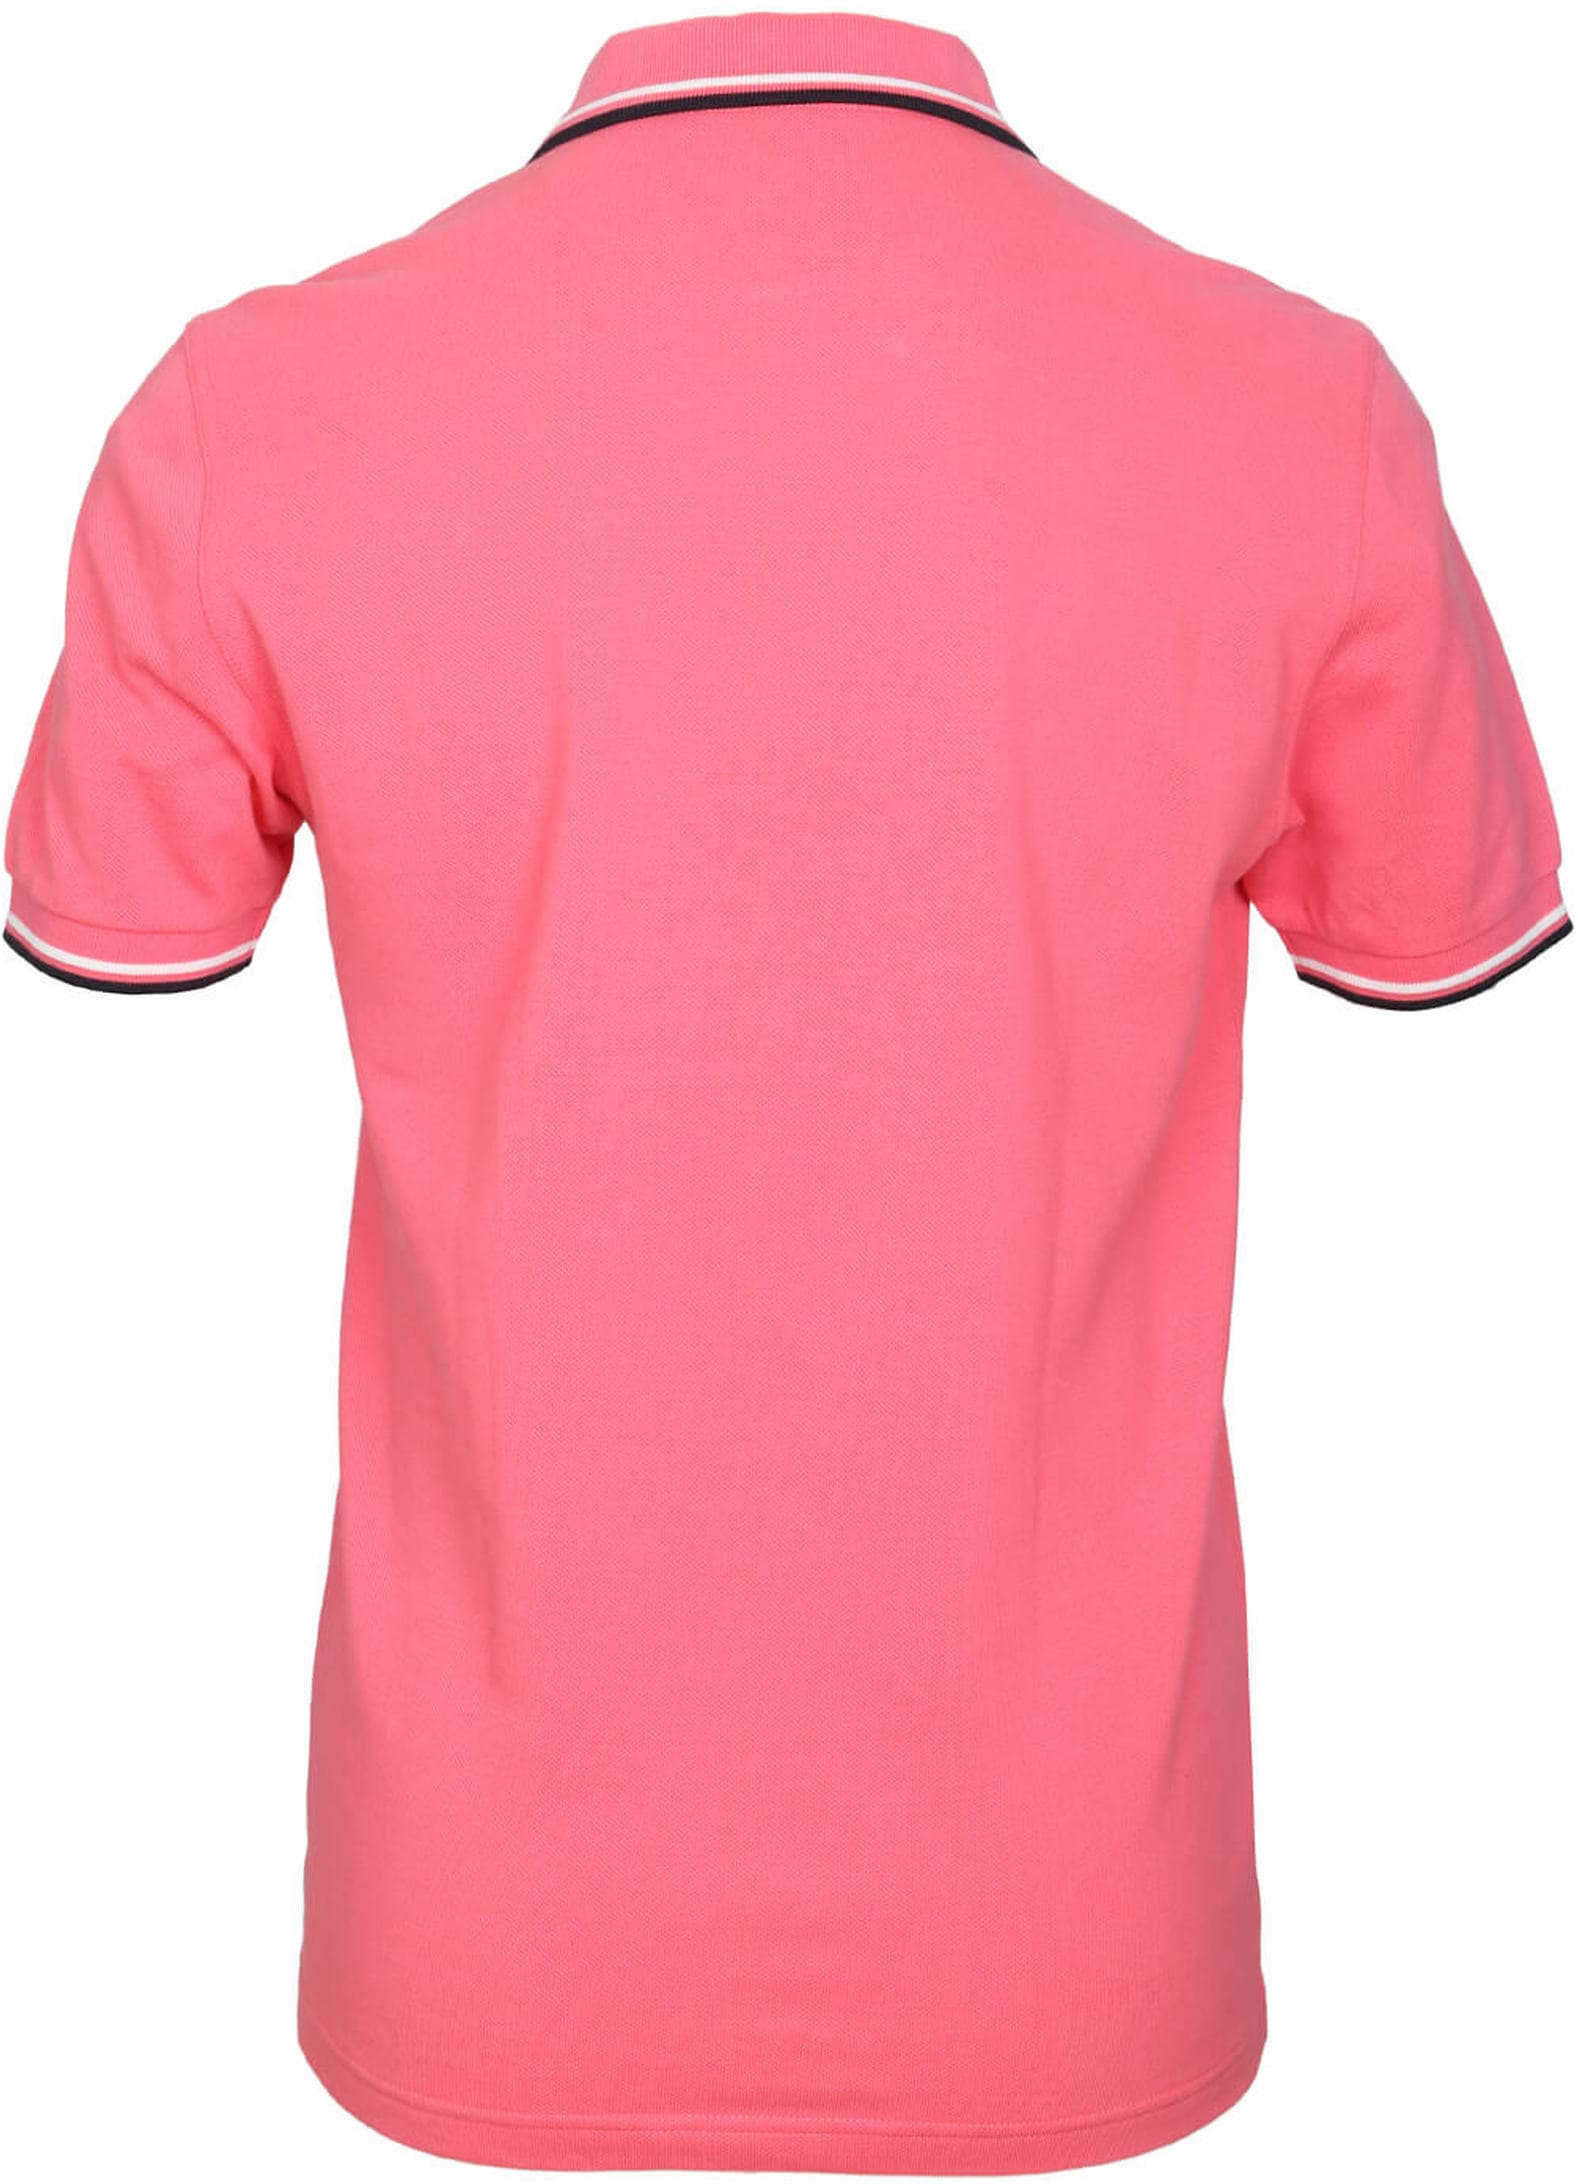 Fred Perry Polo Roze 489 foto 1